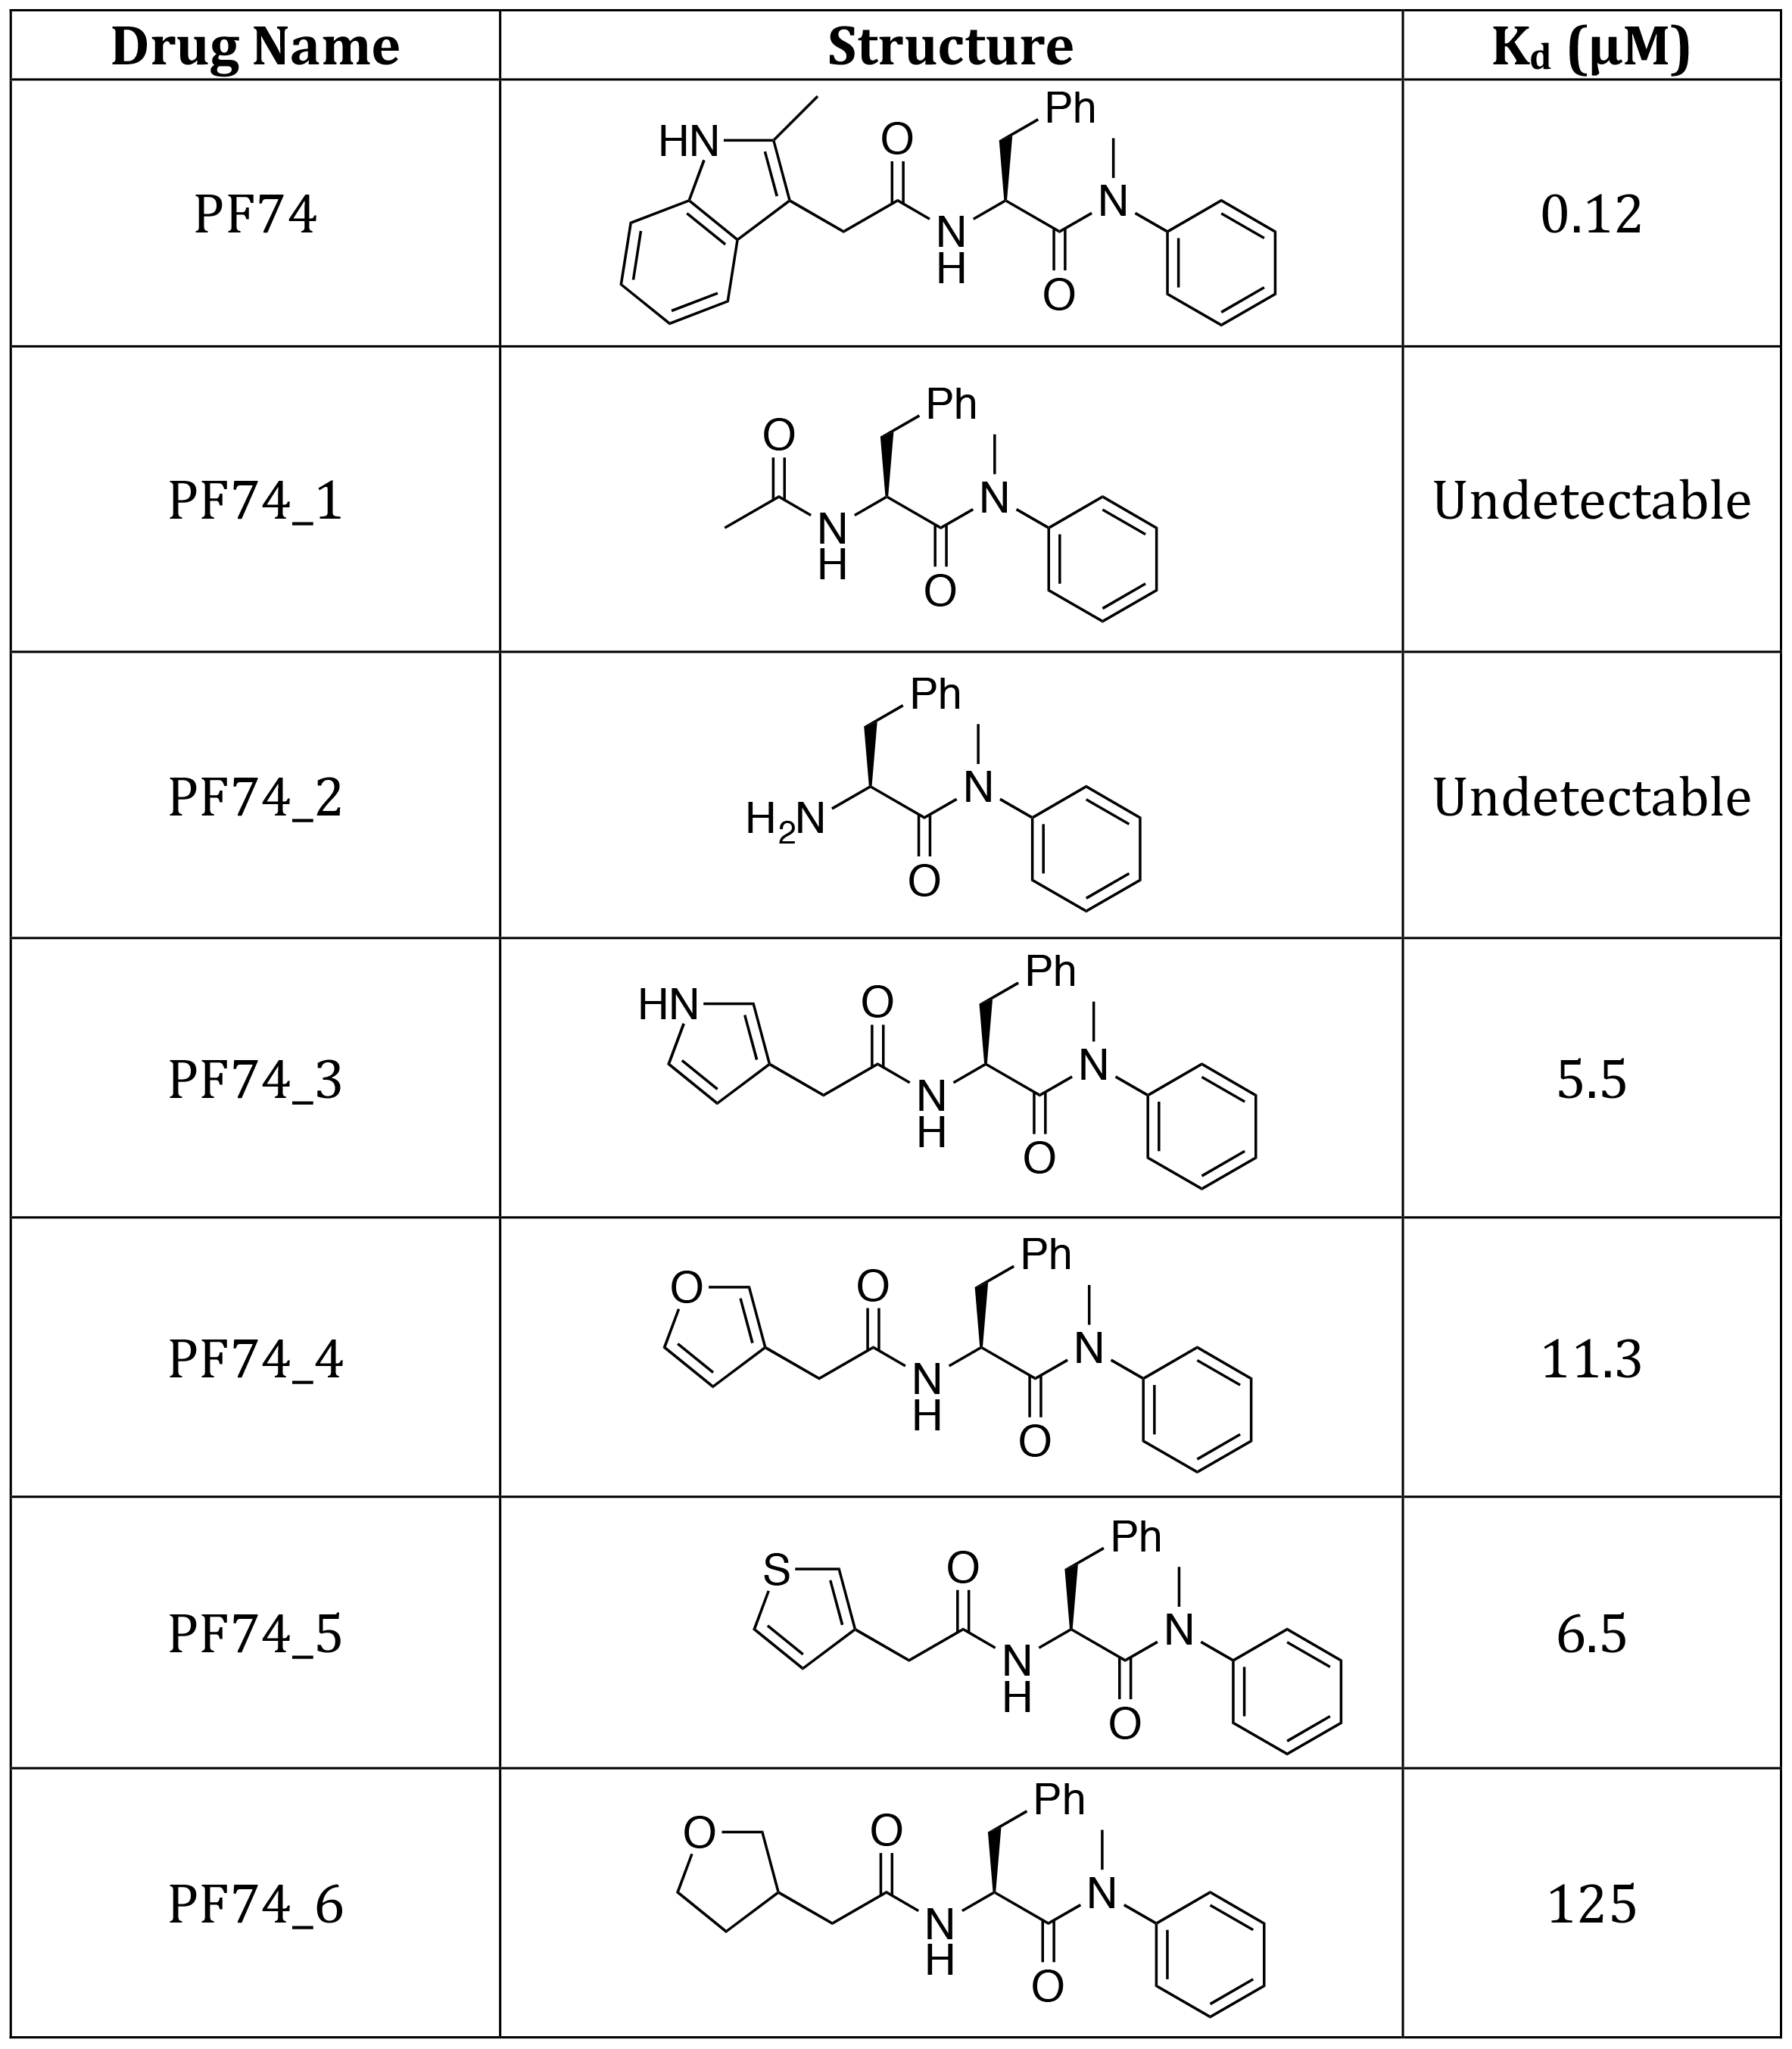 Structures of PF74 derivatives used in this study and their affinities of binding to CA.